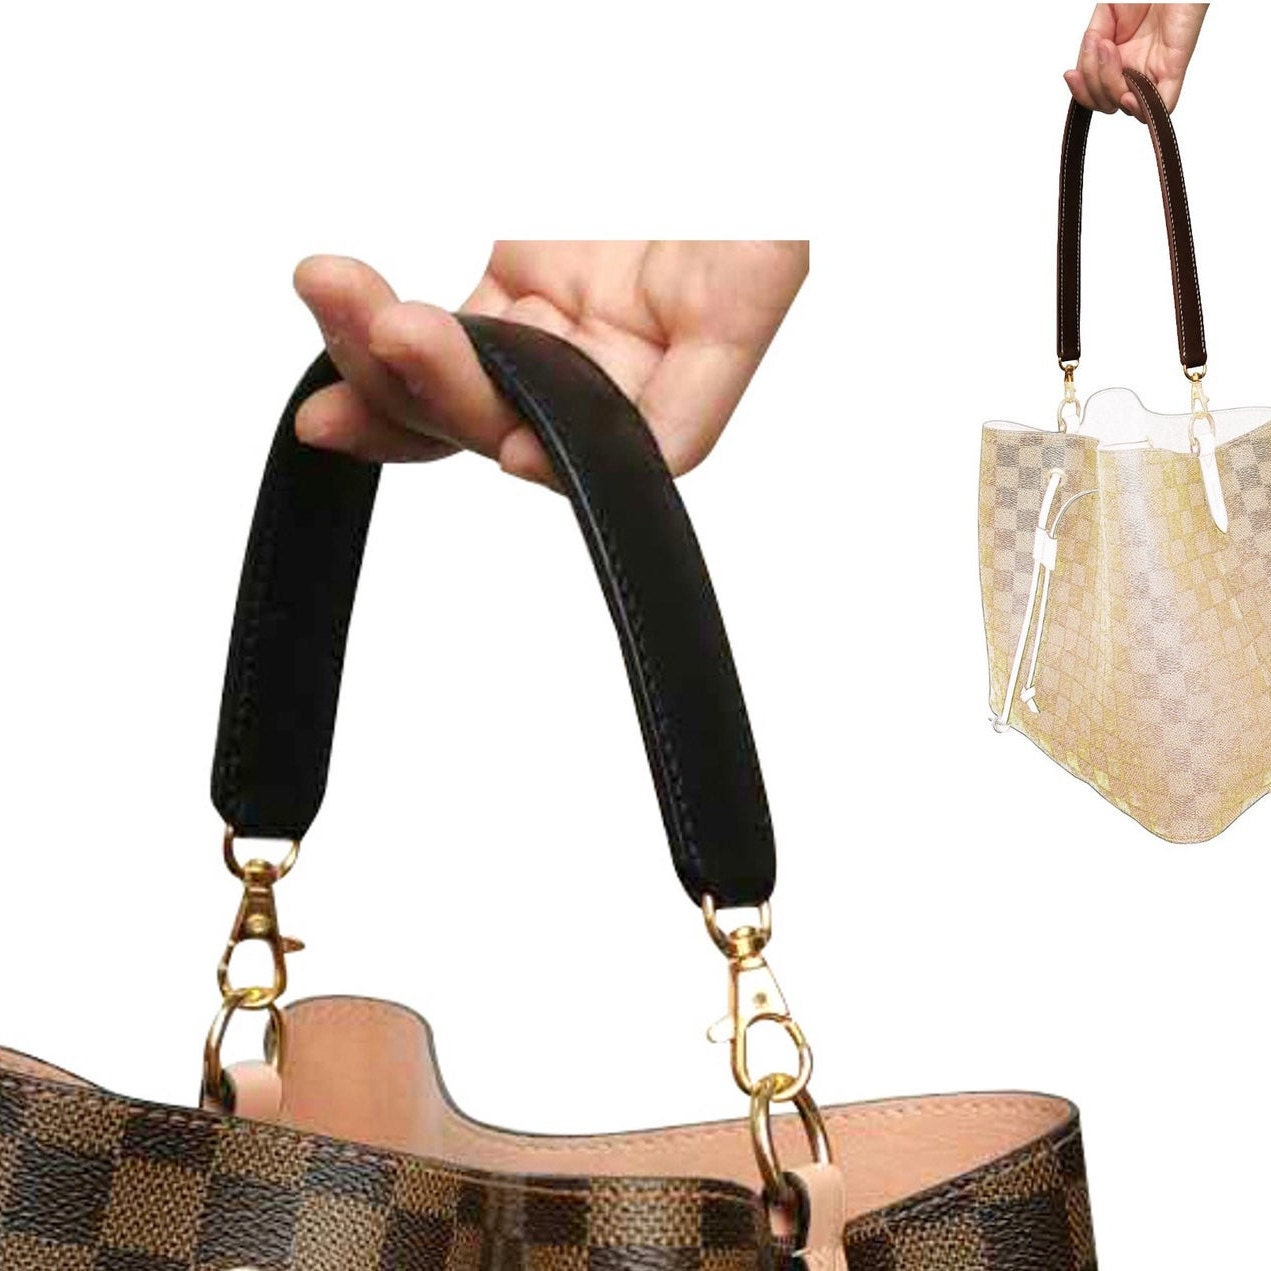 Clasps Clips Claw Convert Zip Pouch to Cross Body Bag Purse GM MM PM Neverfull Pochette Pouch Ring Hook and Gold Chain Strap